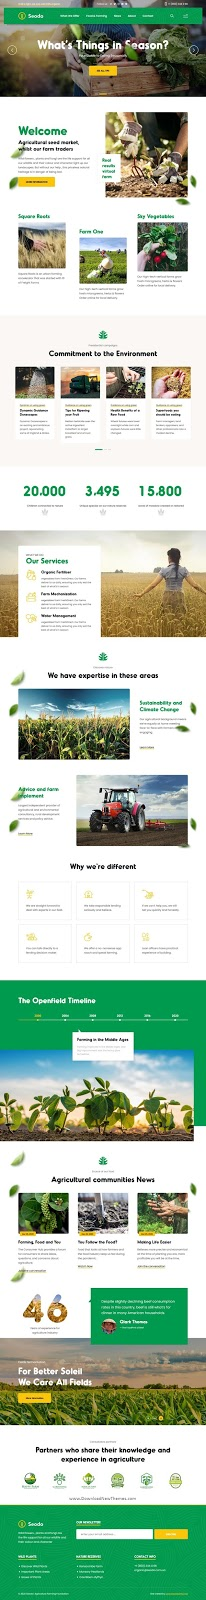 Agriculture Farming Foundation Template